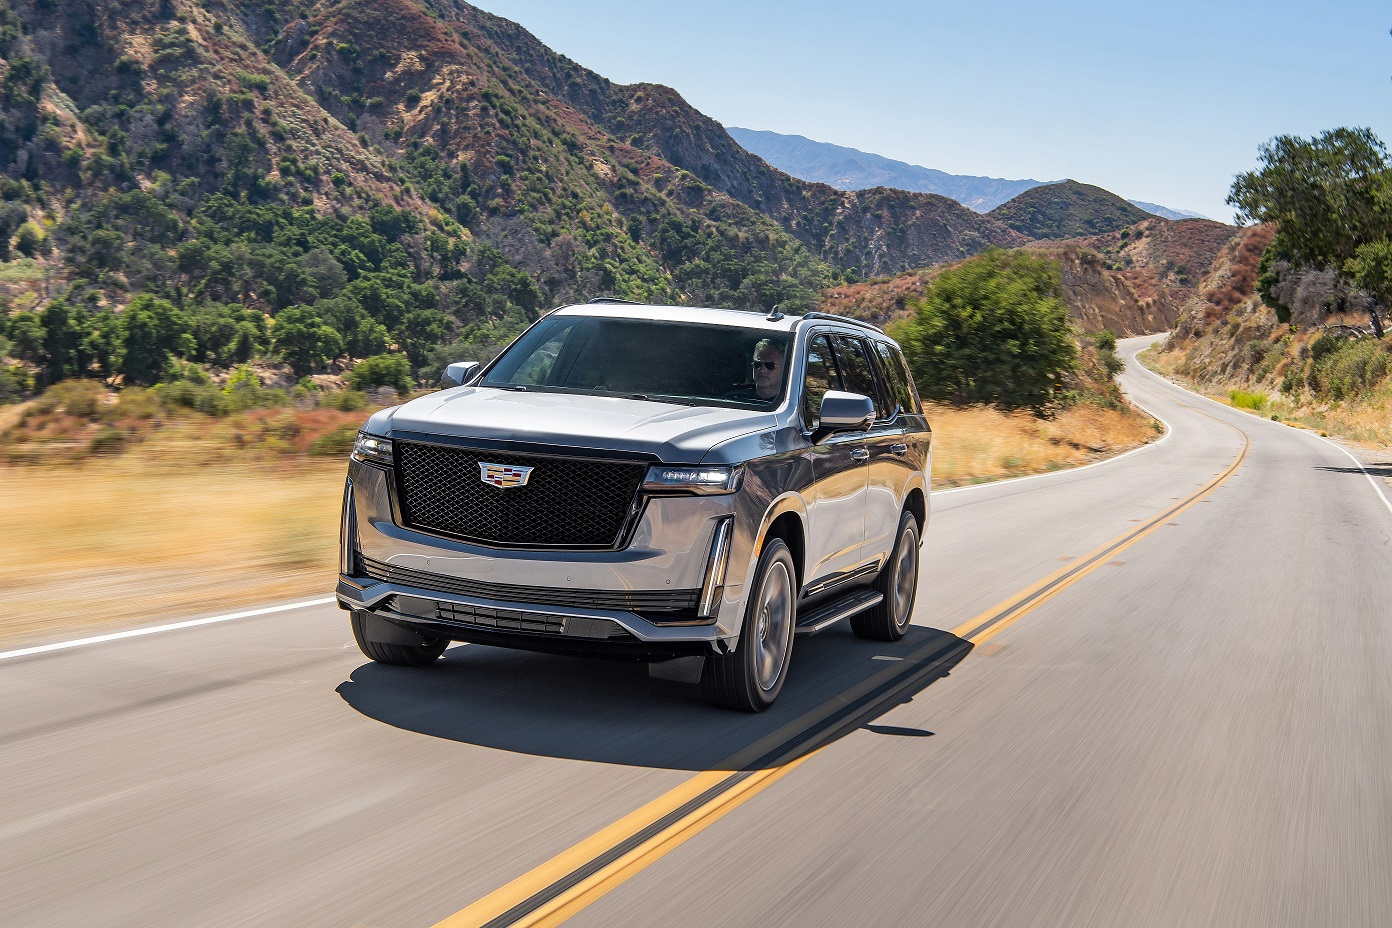 The Iconic 2021 Cadillac Escalade Arrives in the Middle East Setting New Benchmarks for Luxury SUVs